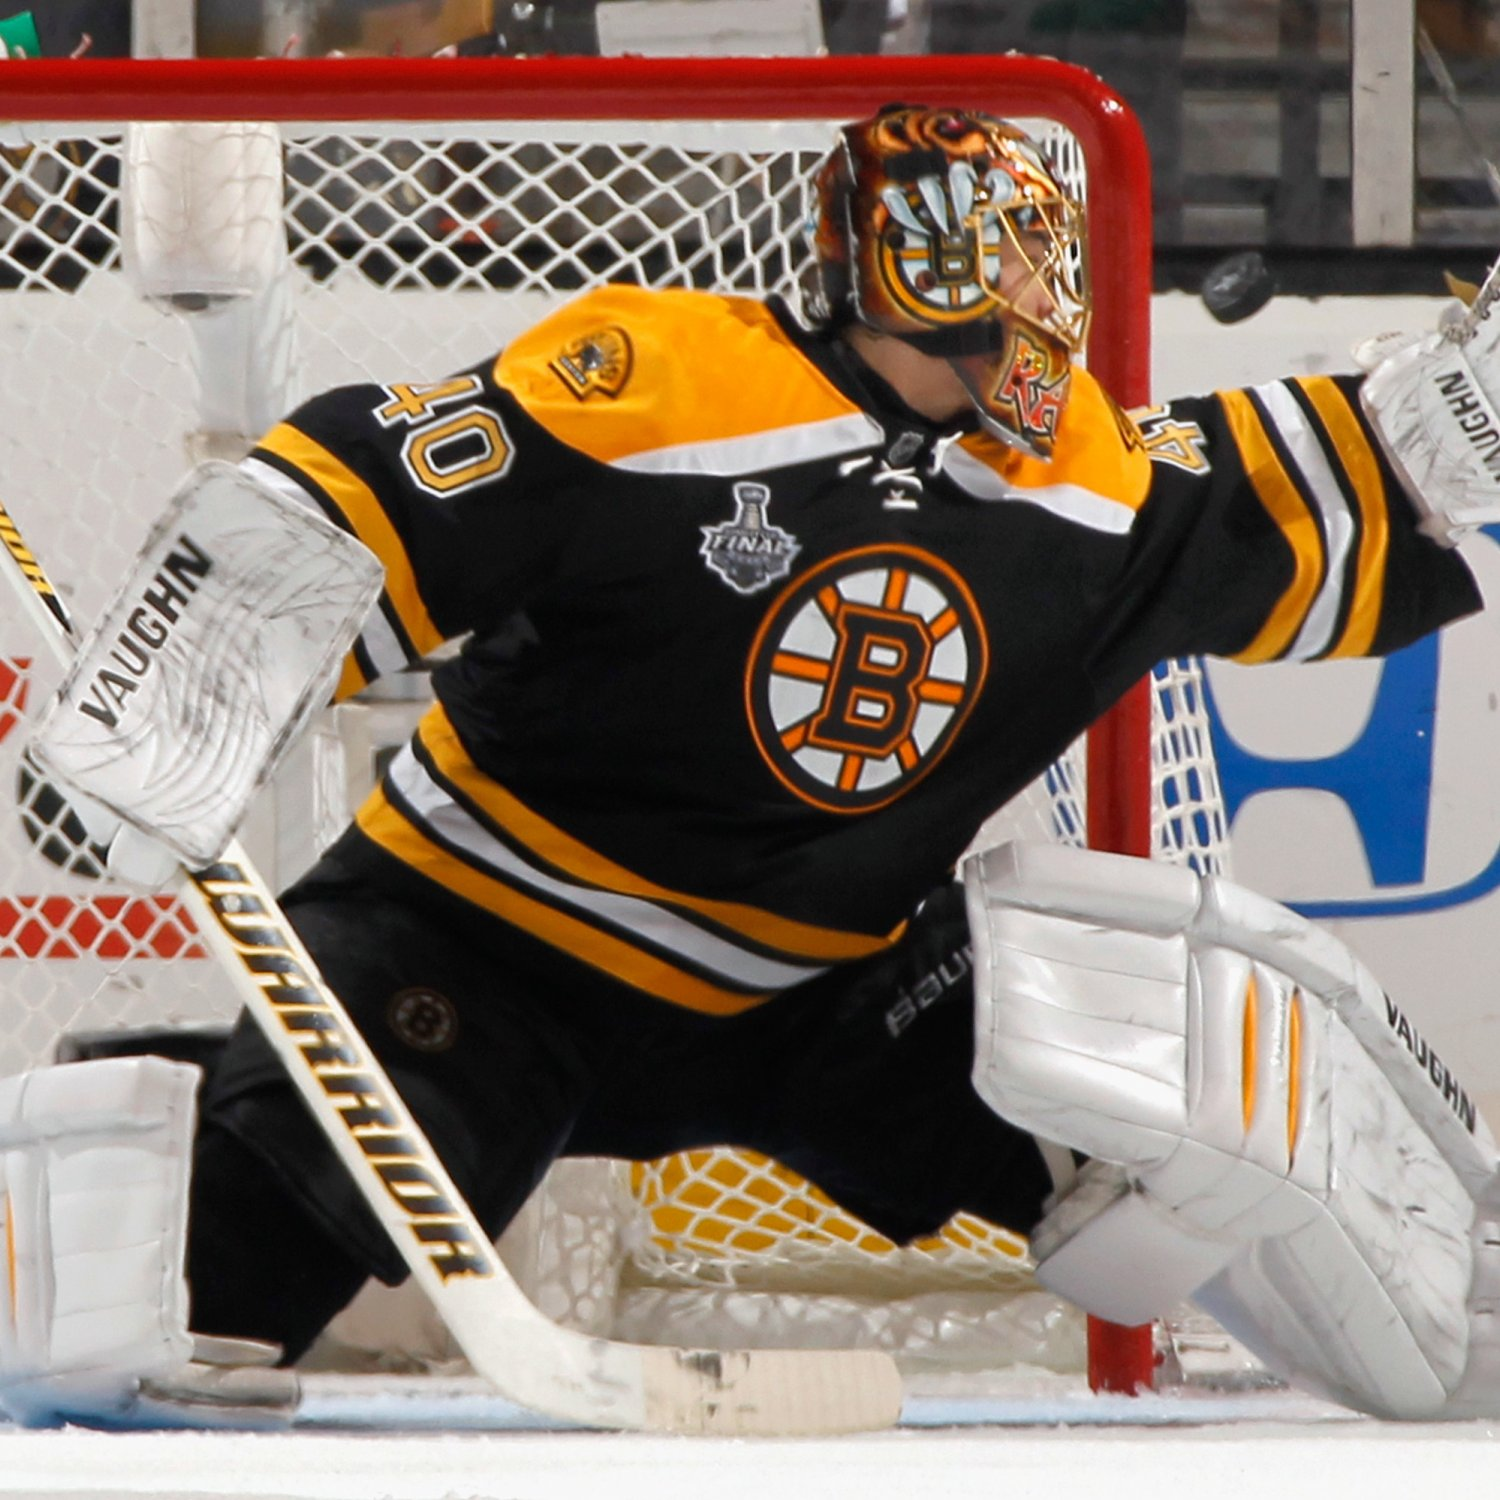 Biggest Potential Problems For Boston Bruins 2013-14